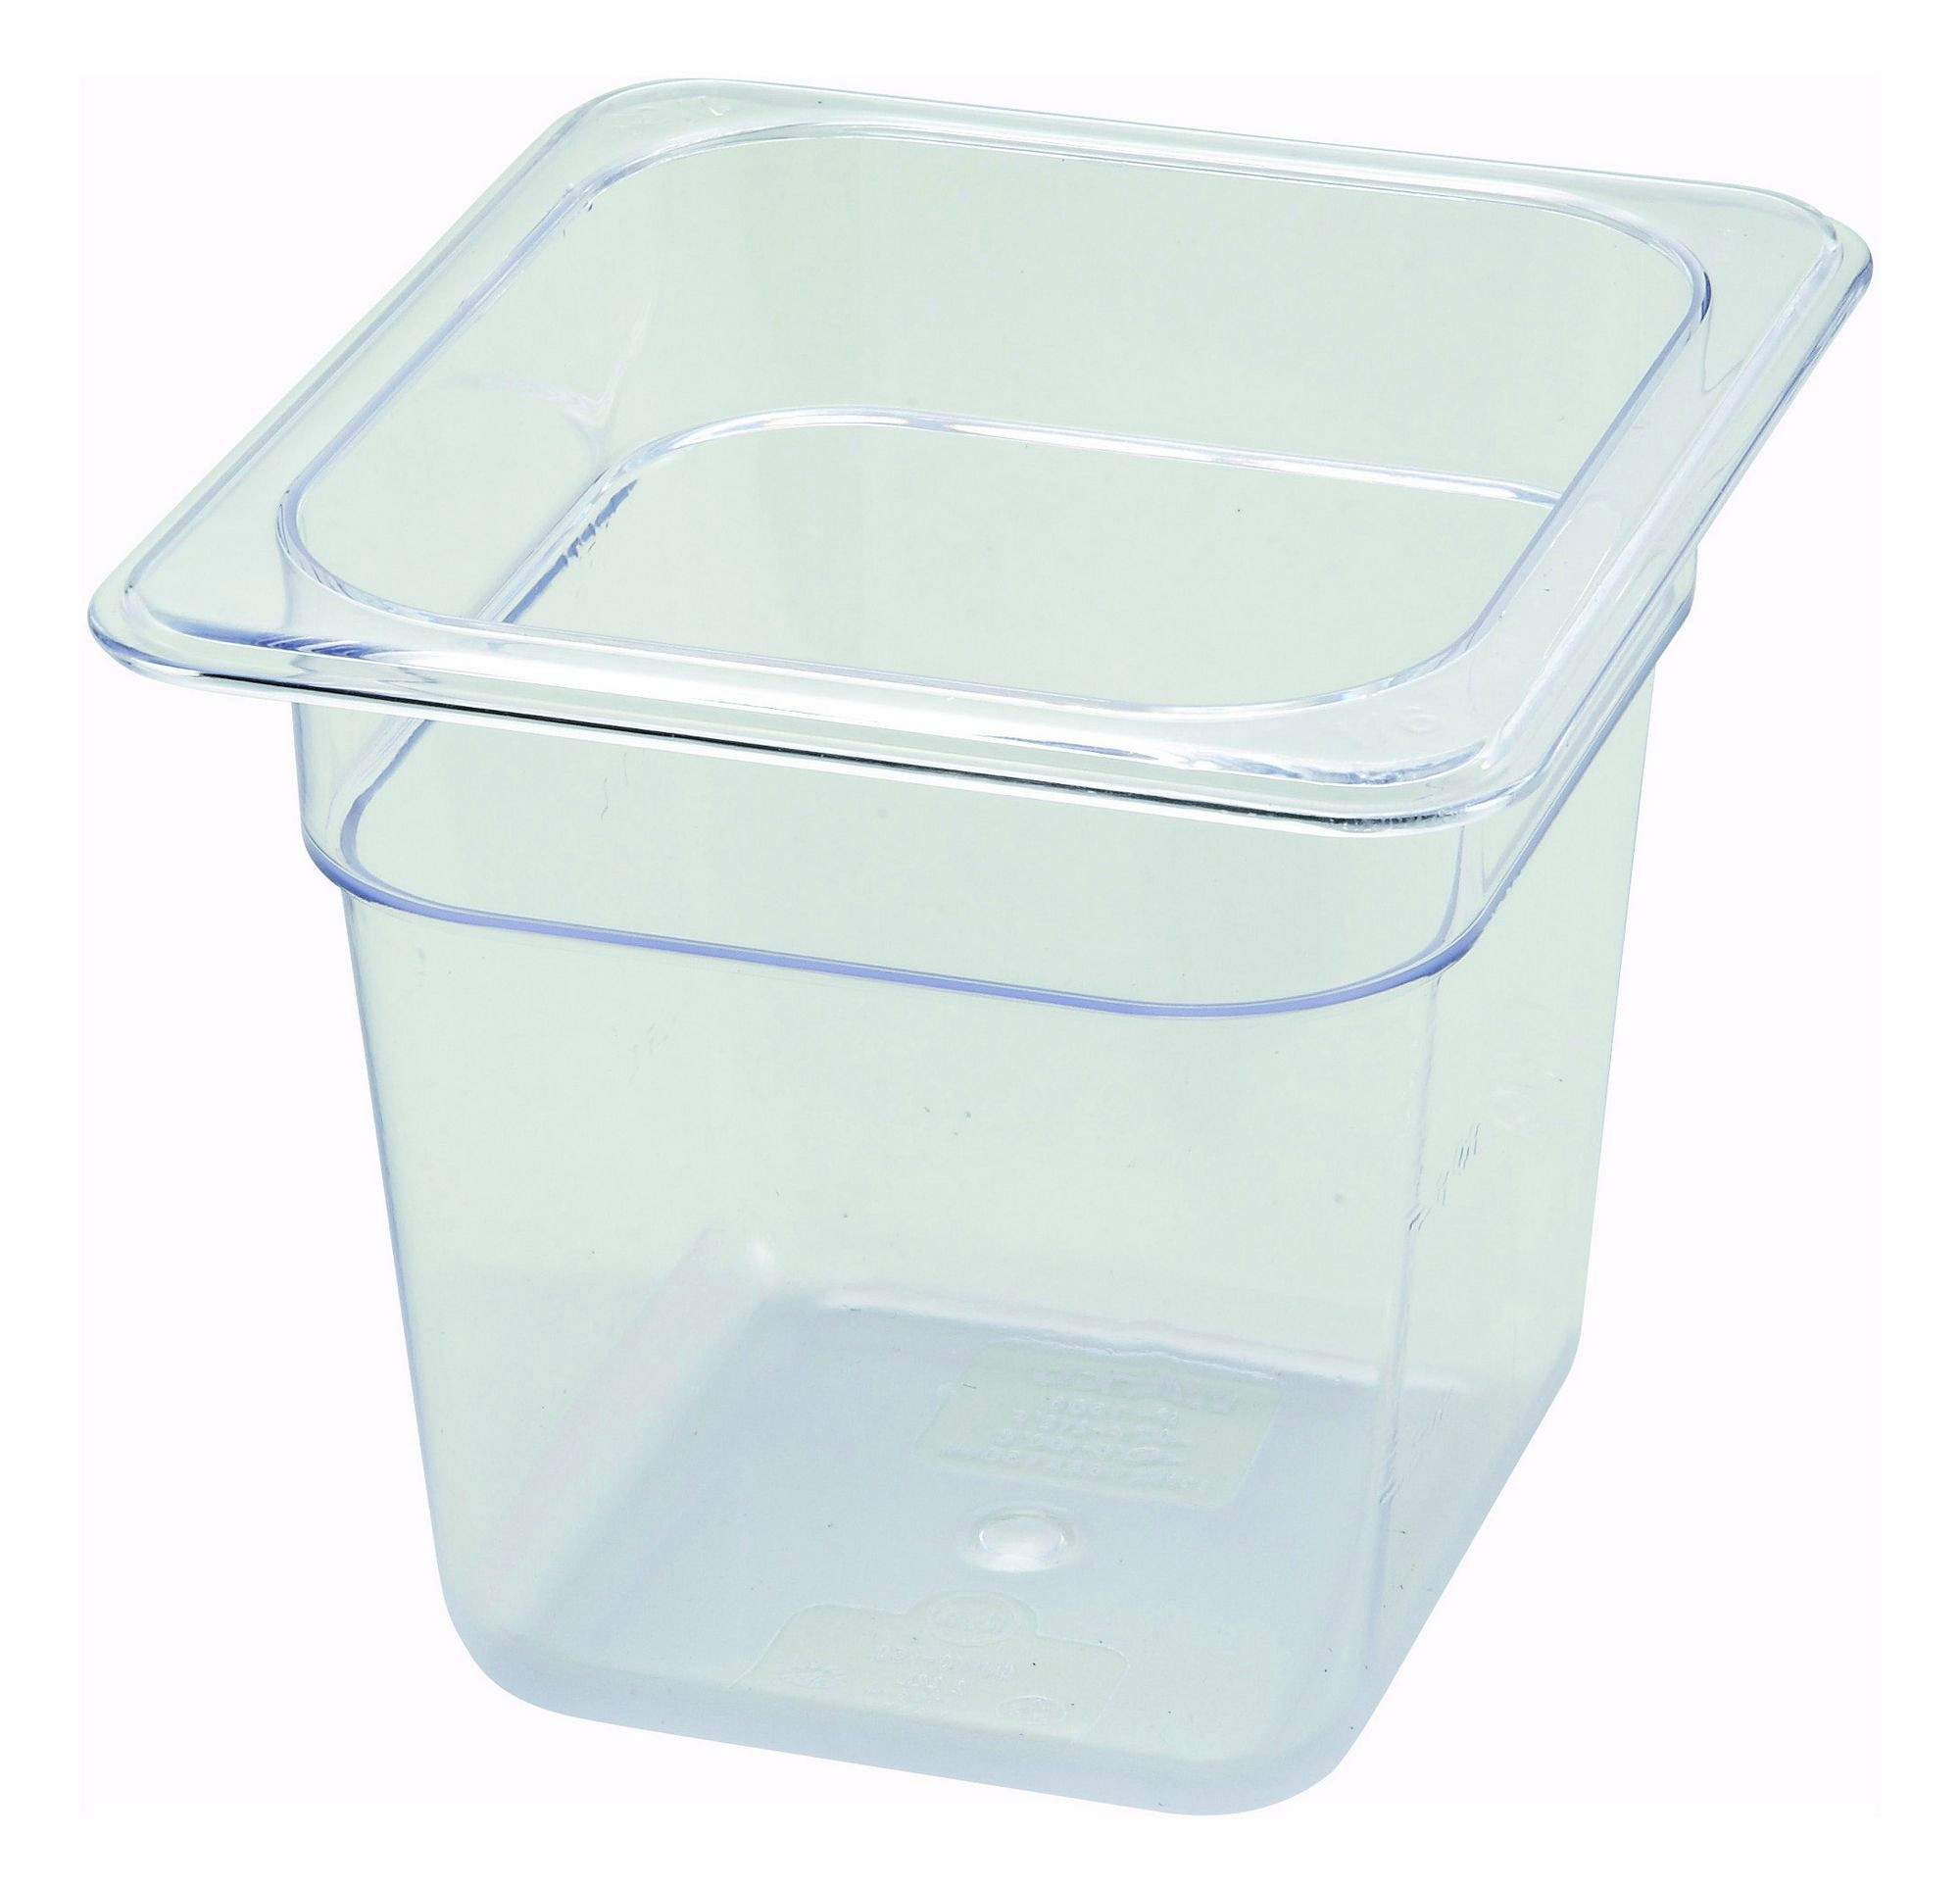 Polycarbonate NSF One-Sixth Size Food Pan - 6 Deep